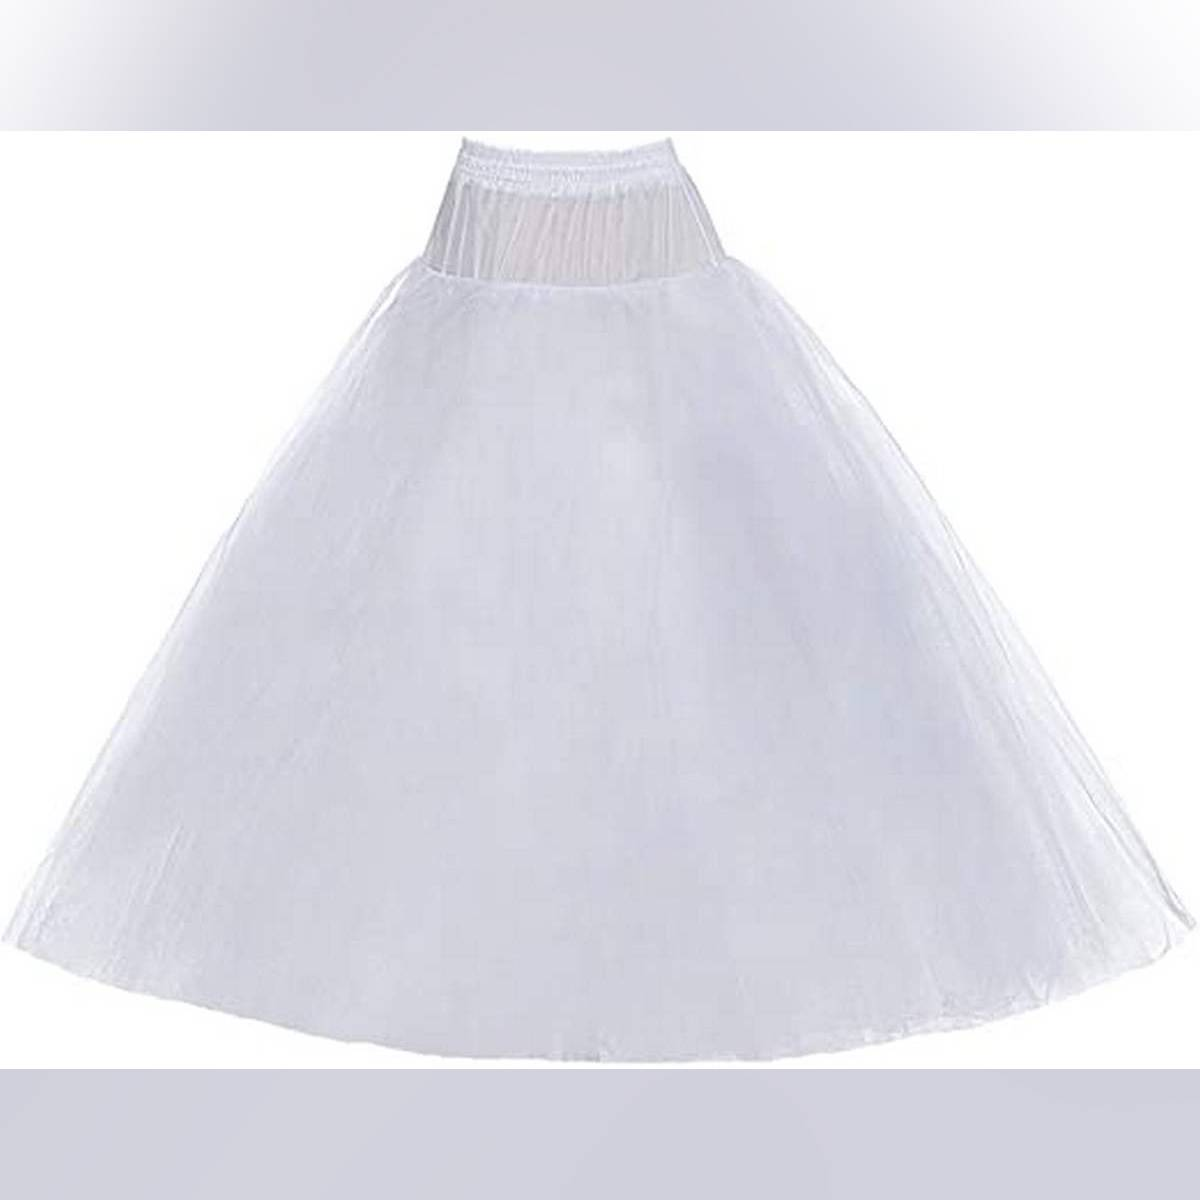 Stitched 4 Layers can can under skirt for lehnga -Length 40-Gear 110 inches-(white)